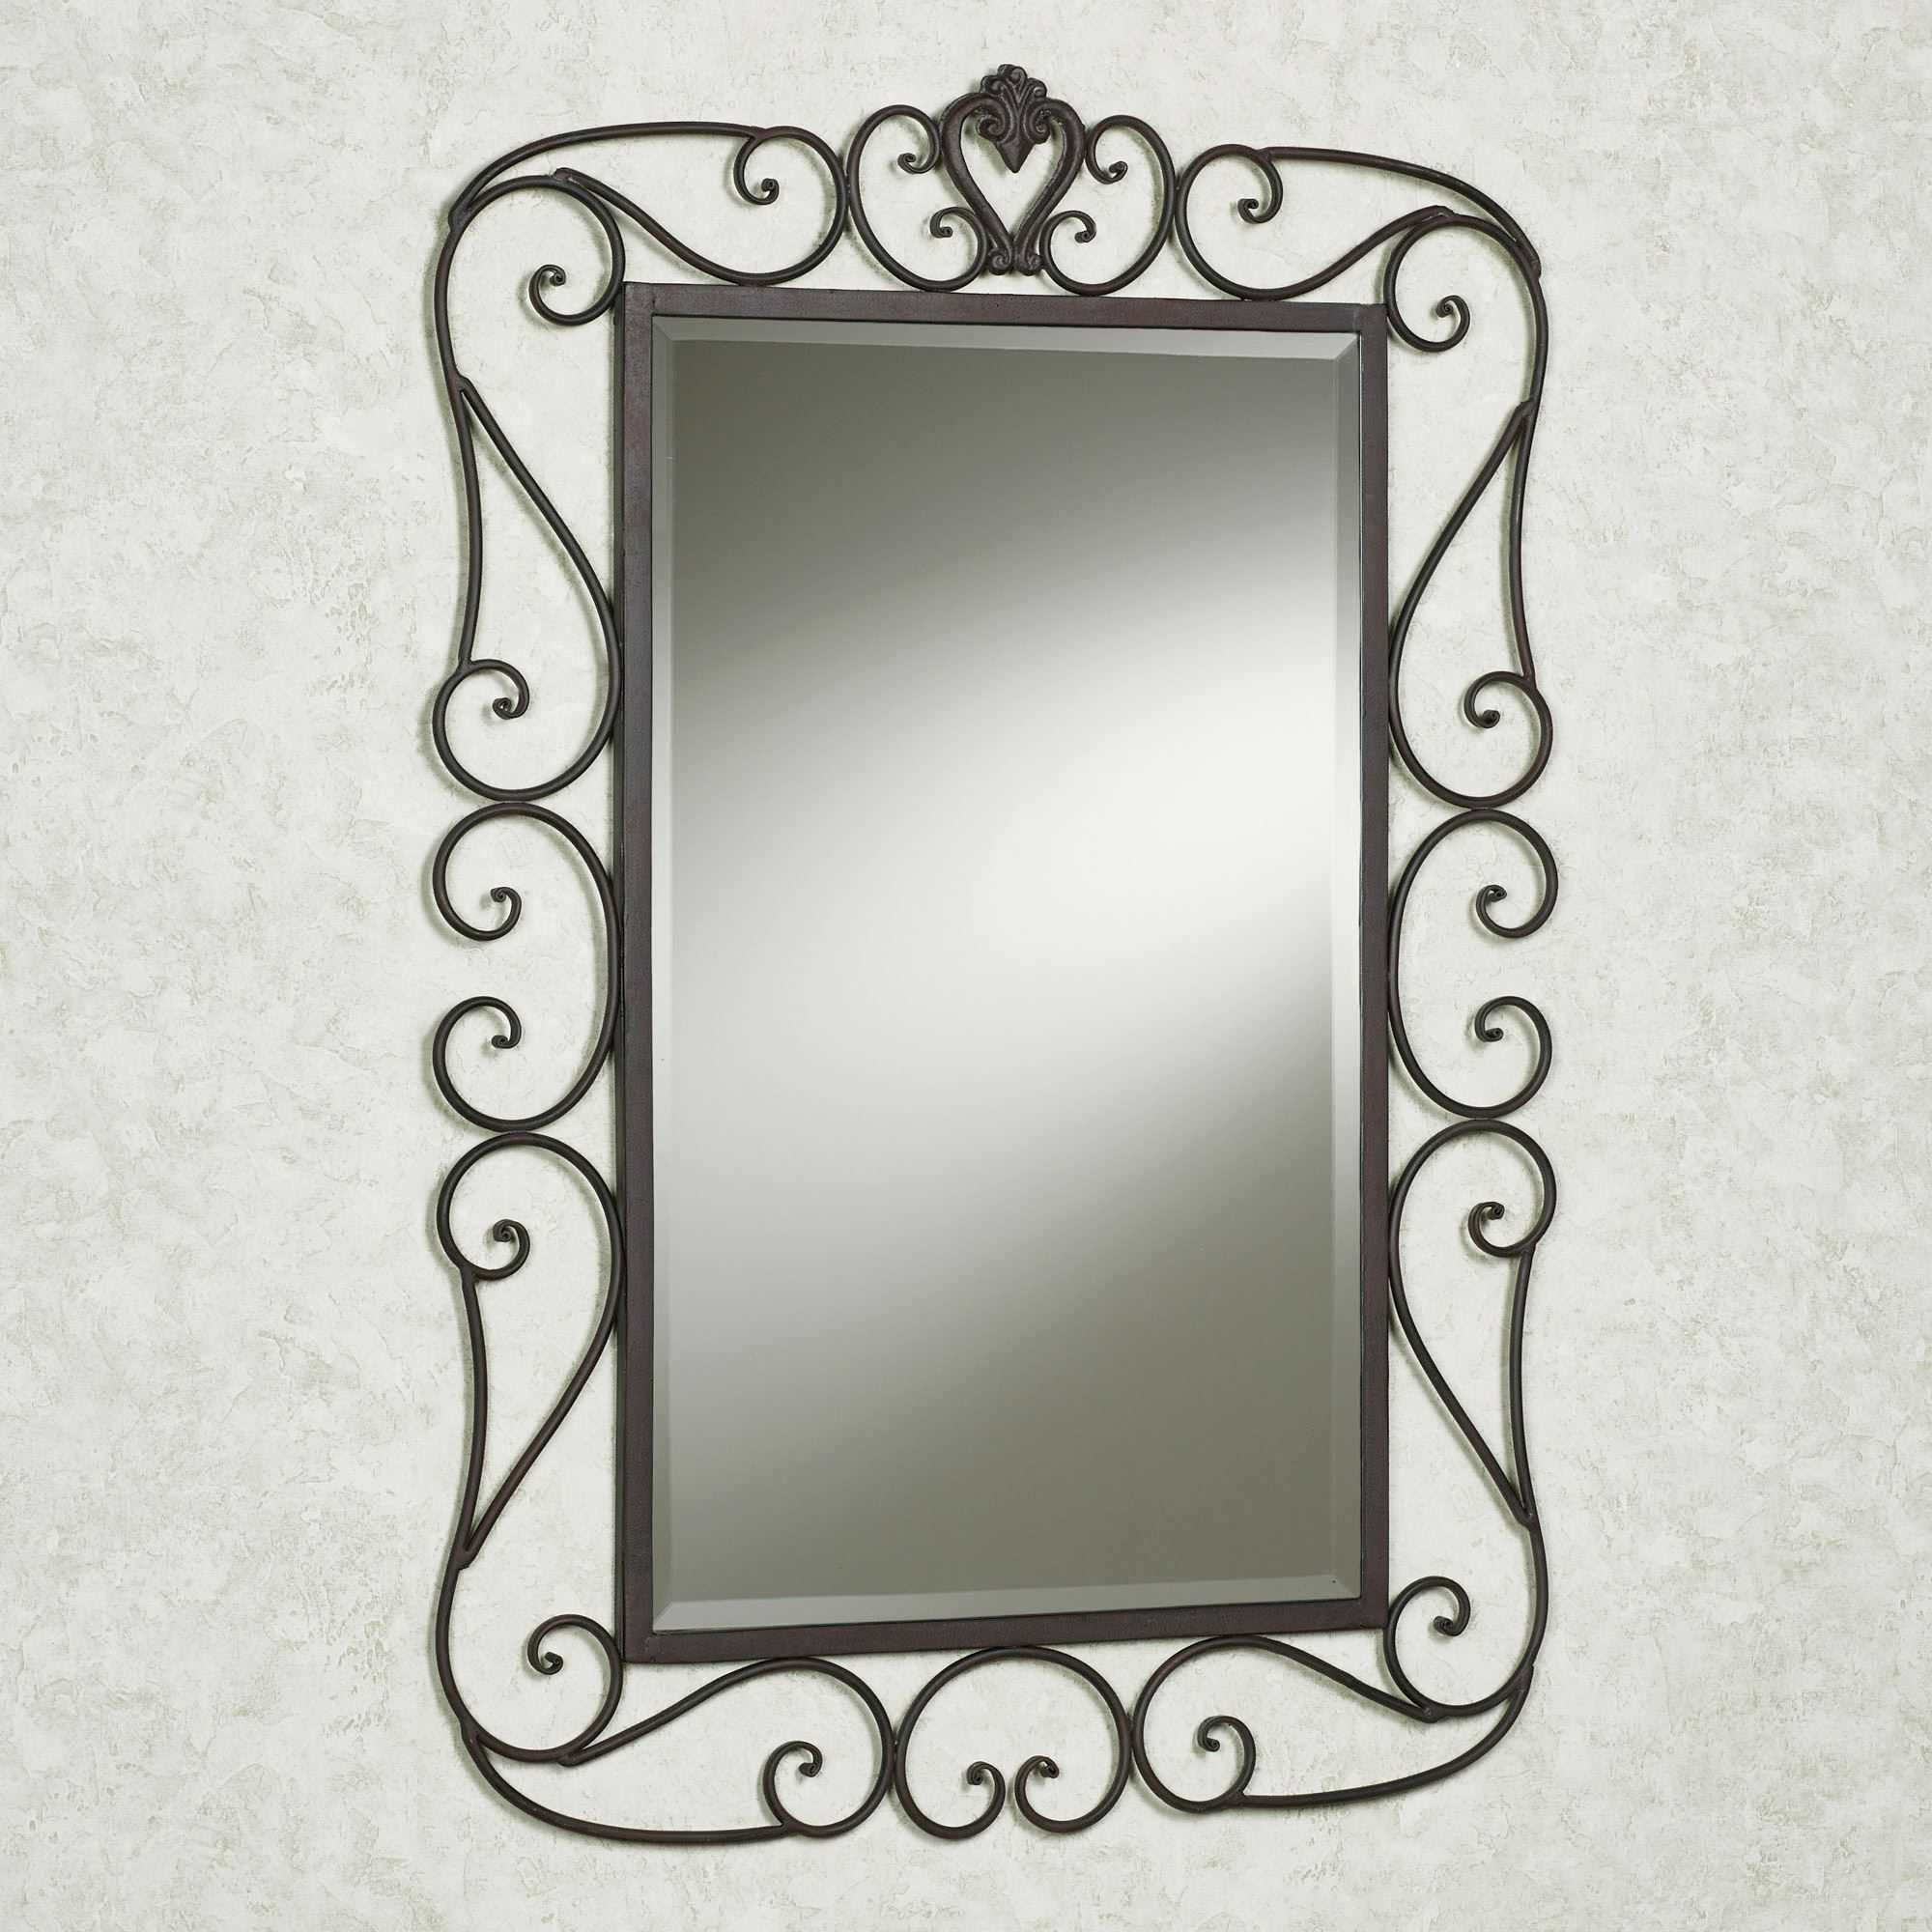 Preferred 56 Wrought Iron Mirror, Large Industrial Heavy Wrought Iron Intended For Wrought Iron Wall Mirrors (View 2 of 20)